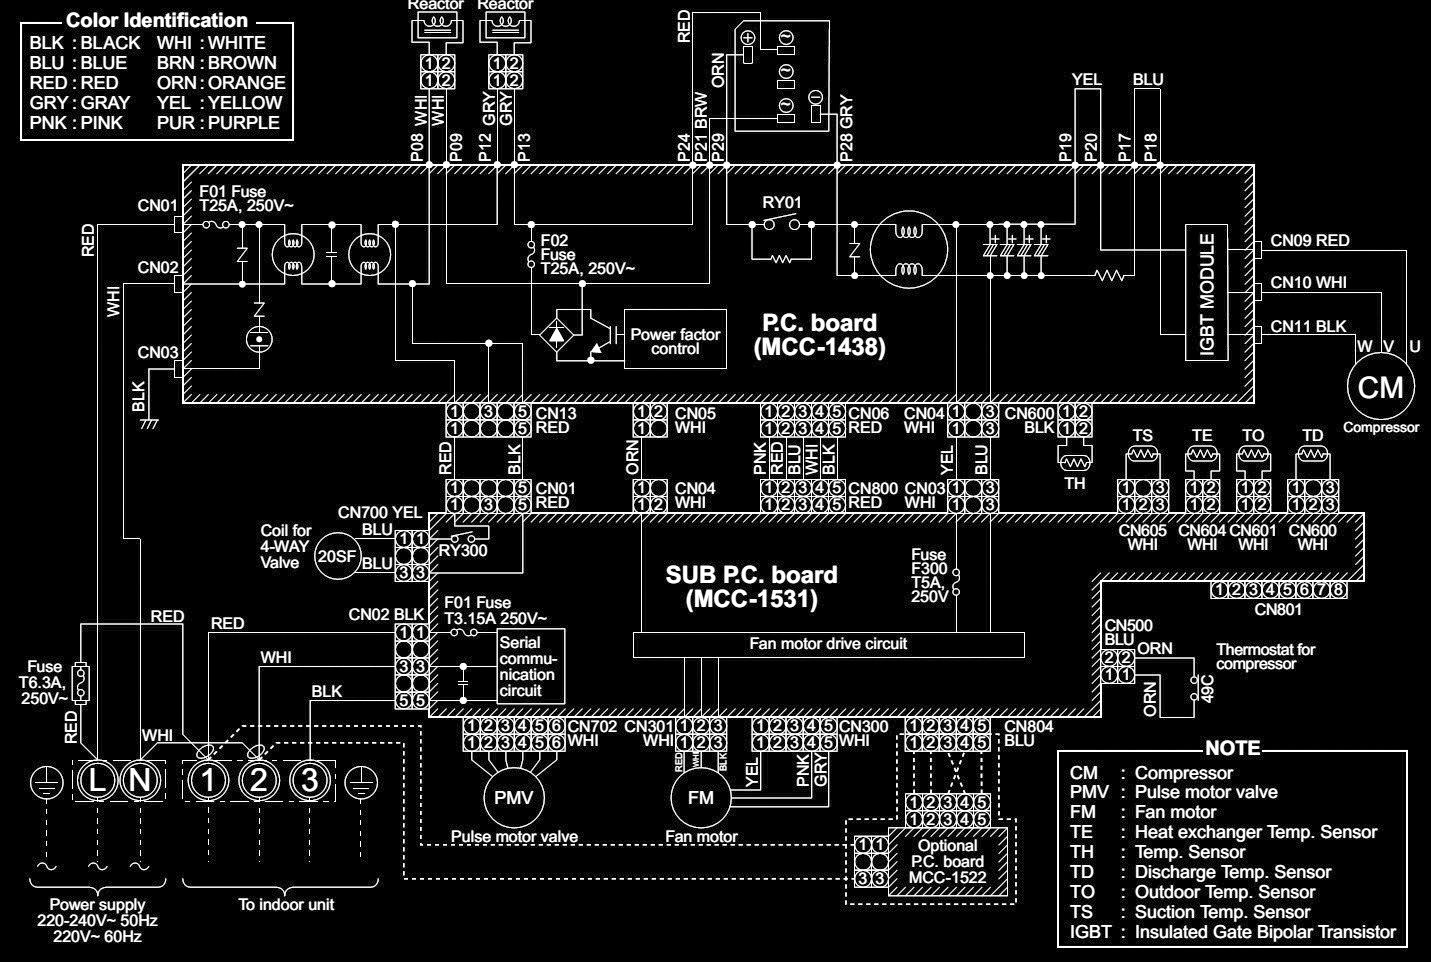 Toshiba Schematic Diagram Explained Wiring Diagrams 50hm66 Television Air Conditioner Trusted U2022 Samsung